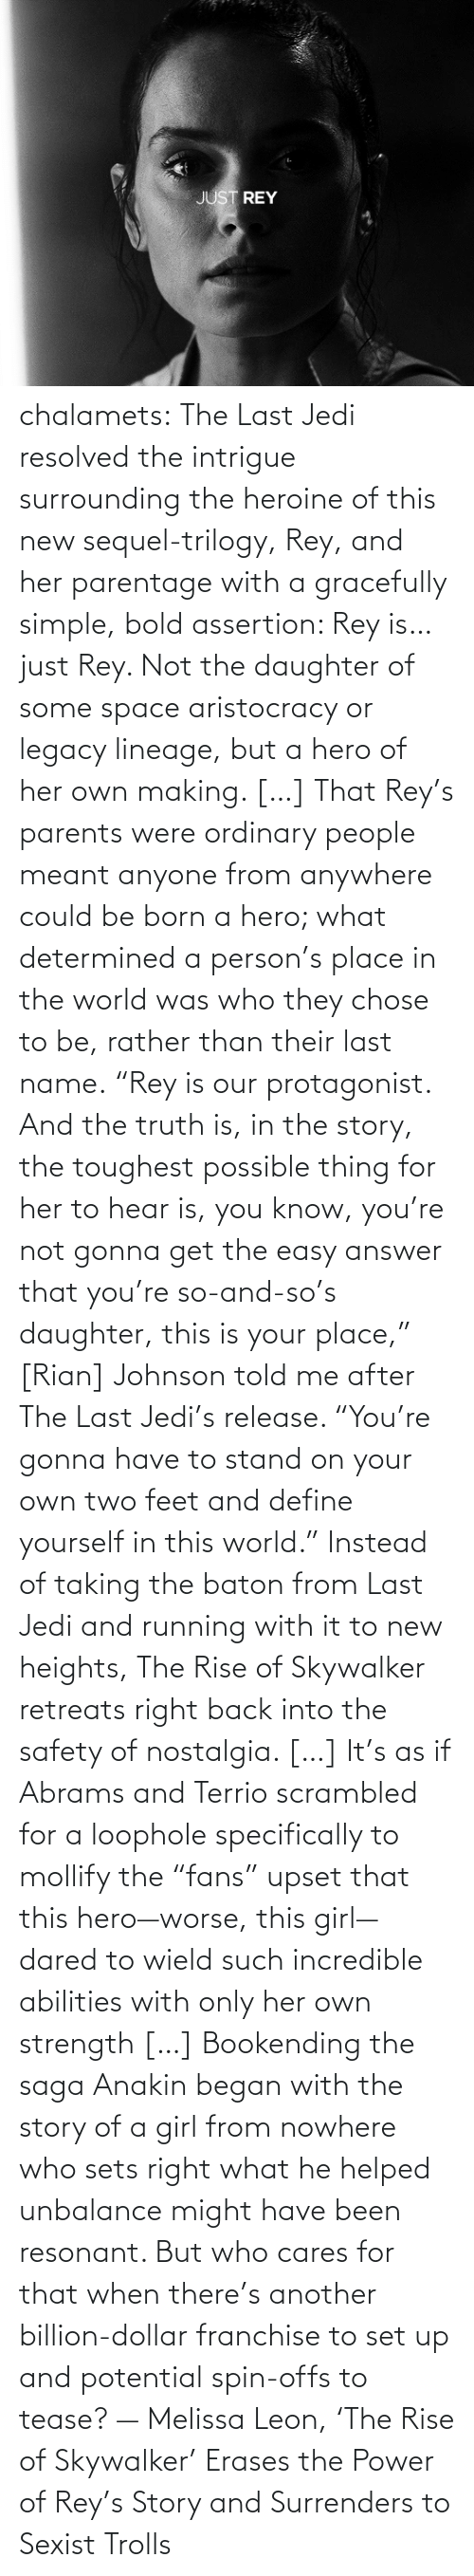 "there: chalamets:  The Last Jedi resolved the intrigue surrounding the heroine of this new sequel-trilogy, Rey, and her parentage with a gracefully simple, bold assertion: Rey is… just Rey. Not the daughter of some space aristocracy or legacy lineage, but a hero of her own making. […] That Rey's parents were ordinary people meant anyone from anywhere could be born a hero; what determined a person's place in the world was who they chose to be, rather than their last name. ""Rey is our protagonist. And the truth is, in the story, the toughest possible thing for her to hear is, you know, you're not gonna get the easy answer that you're so-and-so's daughter, this is your place,"" [Rian] Johnson told me after The Last Jedi's release. ""You're gonna have to stand on your own two feet and define yourself in this world."" Instead of taking the baton from Last Jedi and running with it to new heights, The Rise of Skywalker retreats right back into the safety of nostalgia. […] It's as if Abrams and Terrio scrambled for a loophole specifically to mollify the ""fans"" upset that this hero—worse, this girl—dared to wield such incredible abilities with only her own strength […] Bookending the saga Anakin began with the story of a girl from nowhere who sets right what he helped unbalance might have been resonant. But who cares for that when there's another billion-dollar franchise to set up and potential spin-offs to tease? — Melissa Leon, 'The Rise of Skywalker' Erases the Power of Rey's Story and Surrenders to Sexist Trolls"